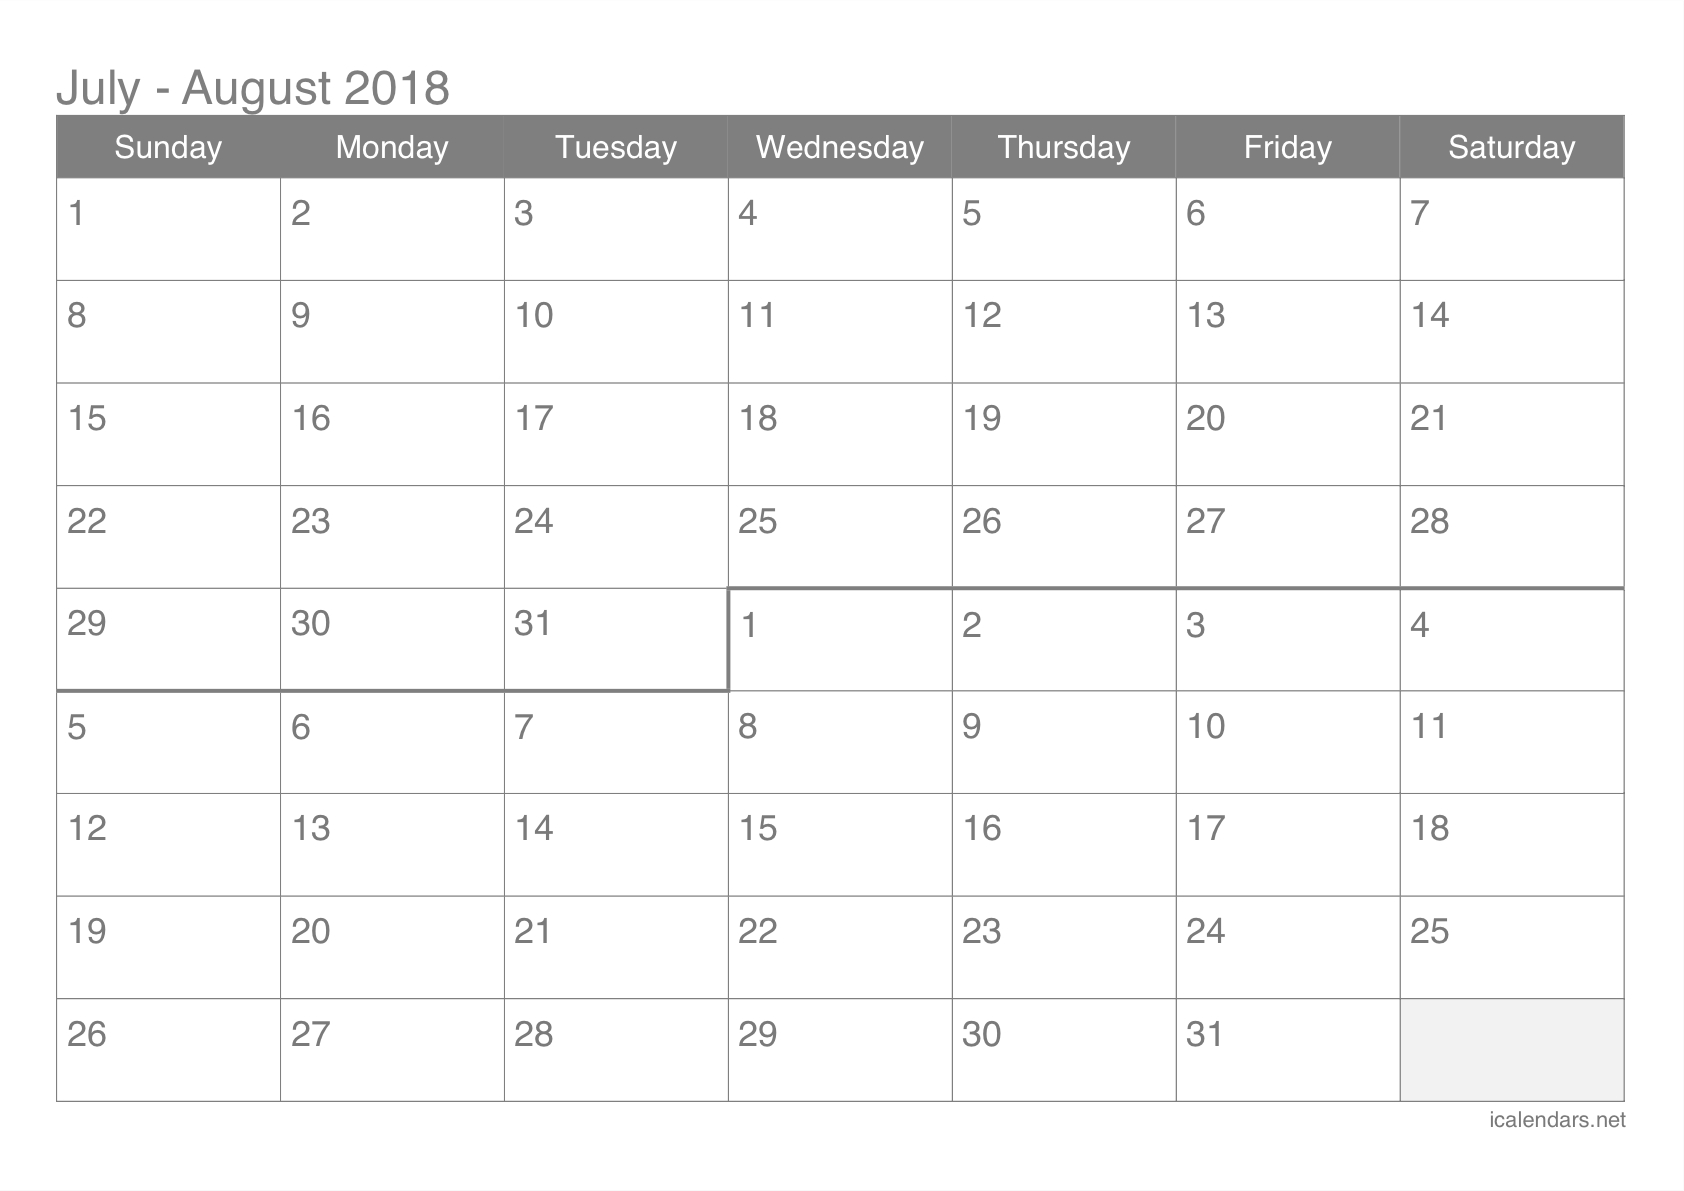 July And August 2018 Printable Calendar - Icalendars within June And July Printable Calendars